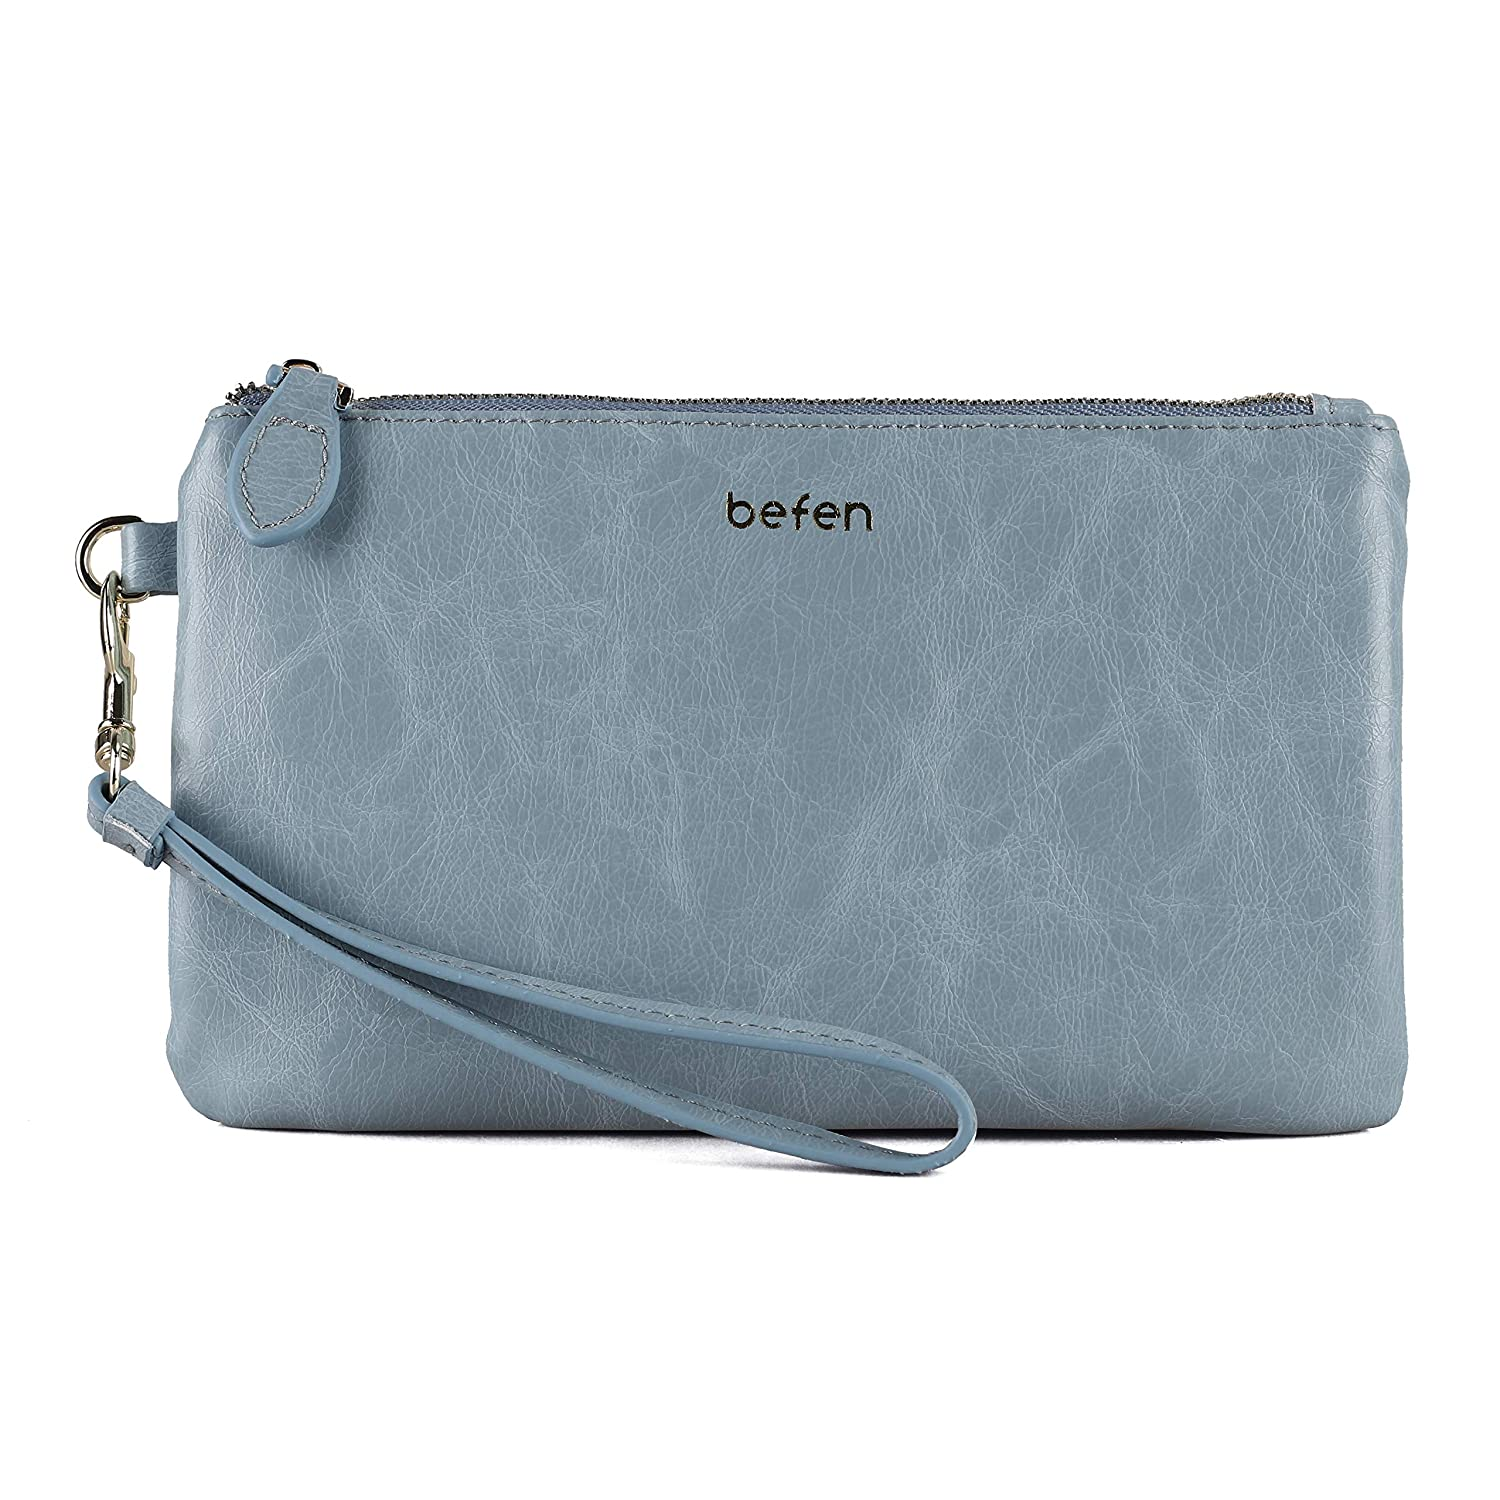 Befen Women's Leather...